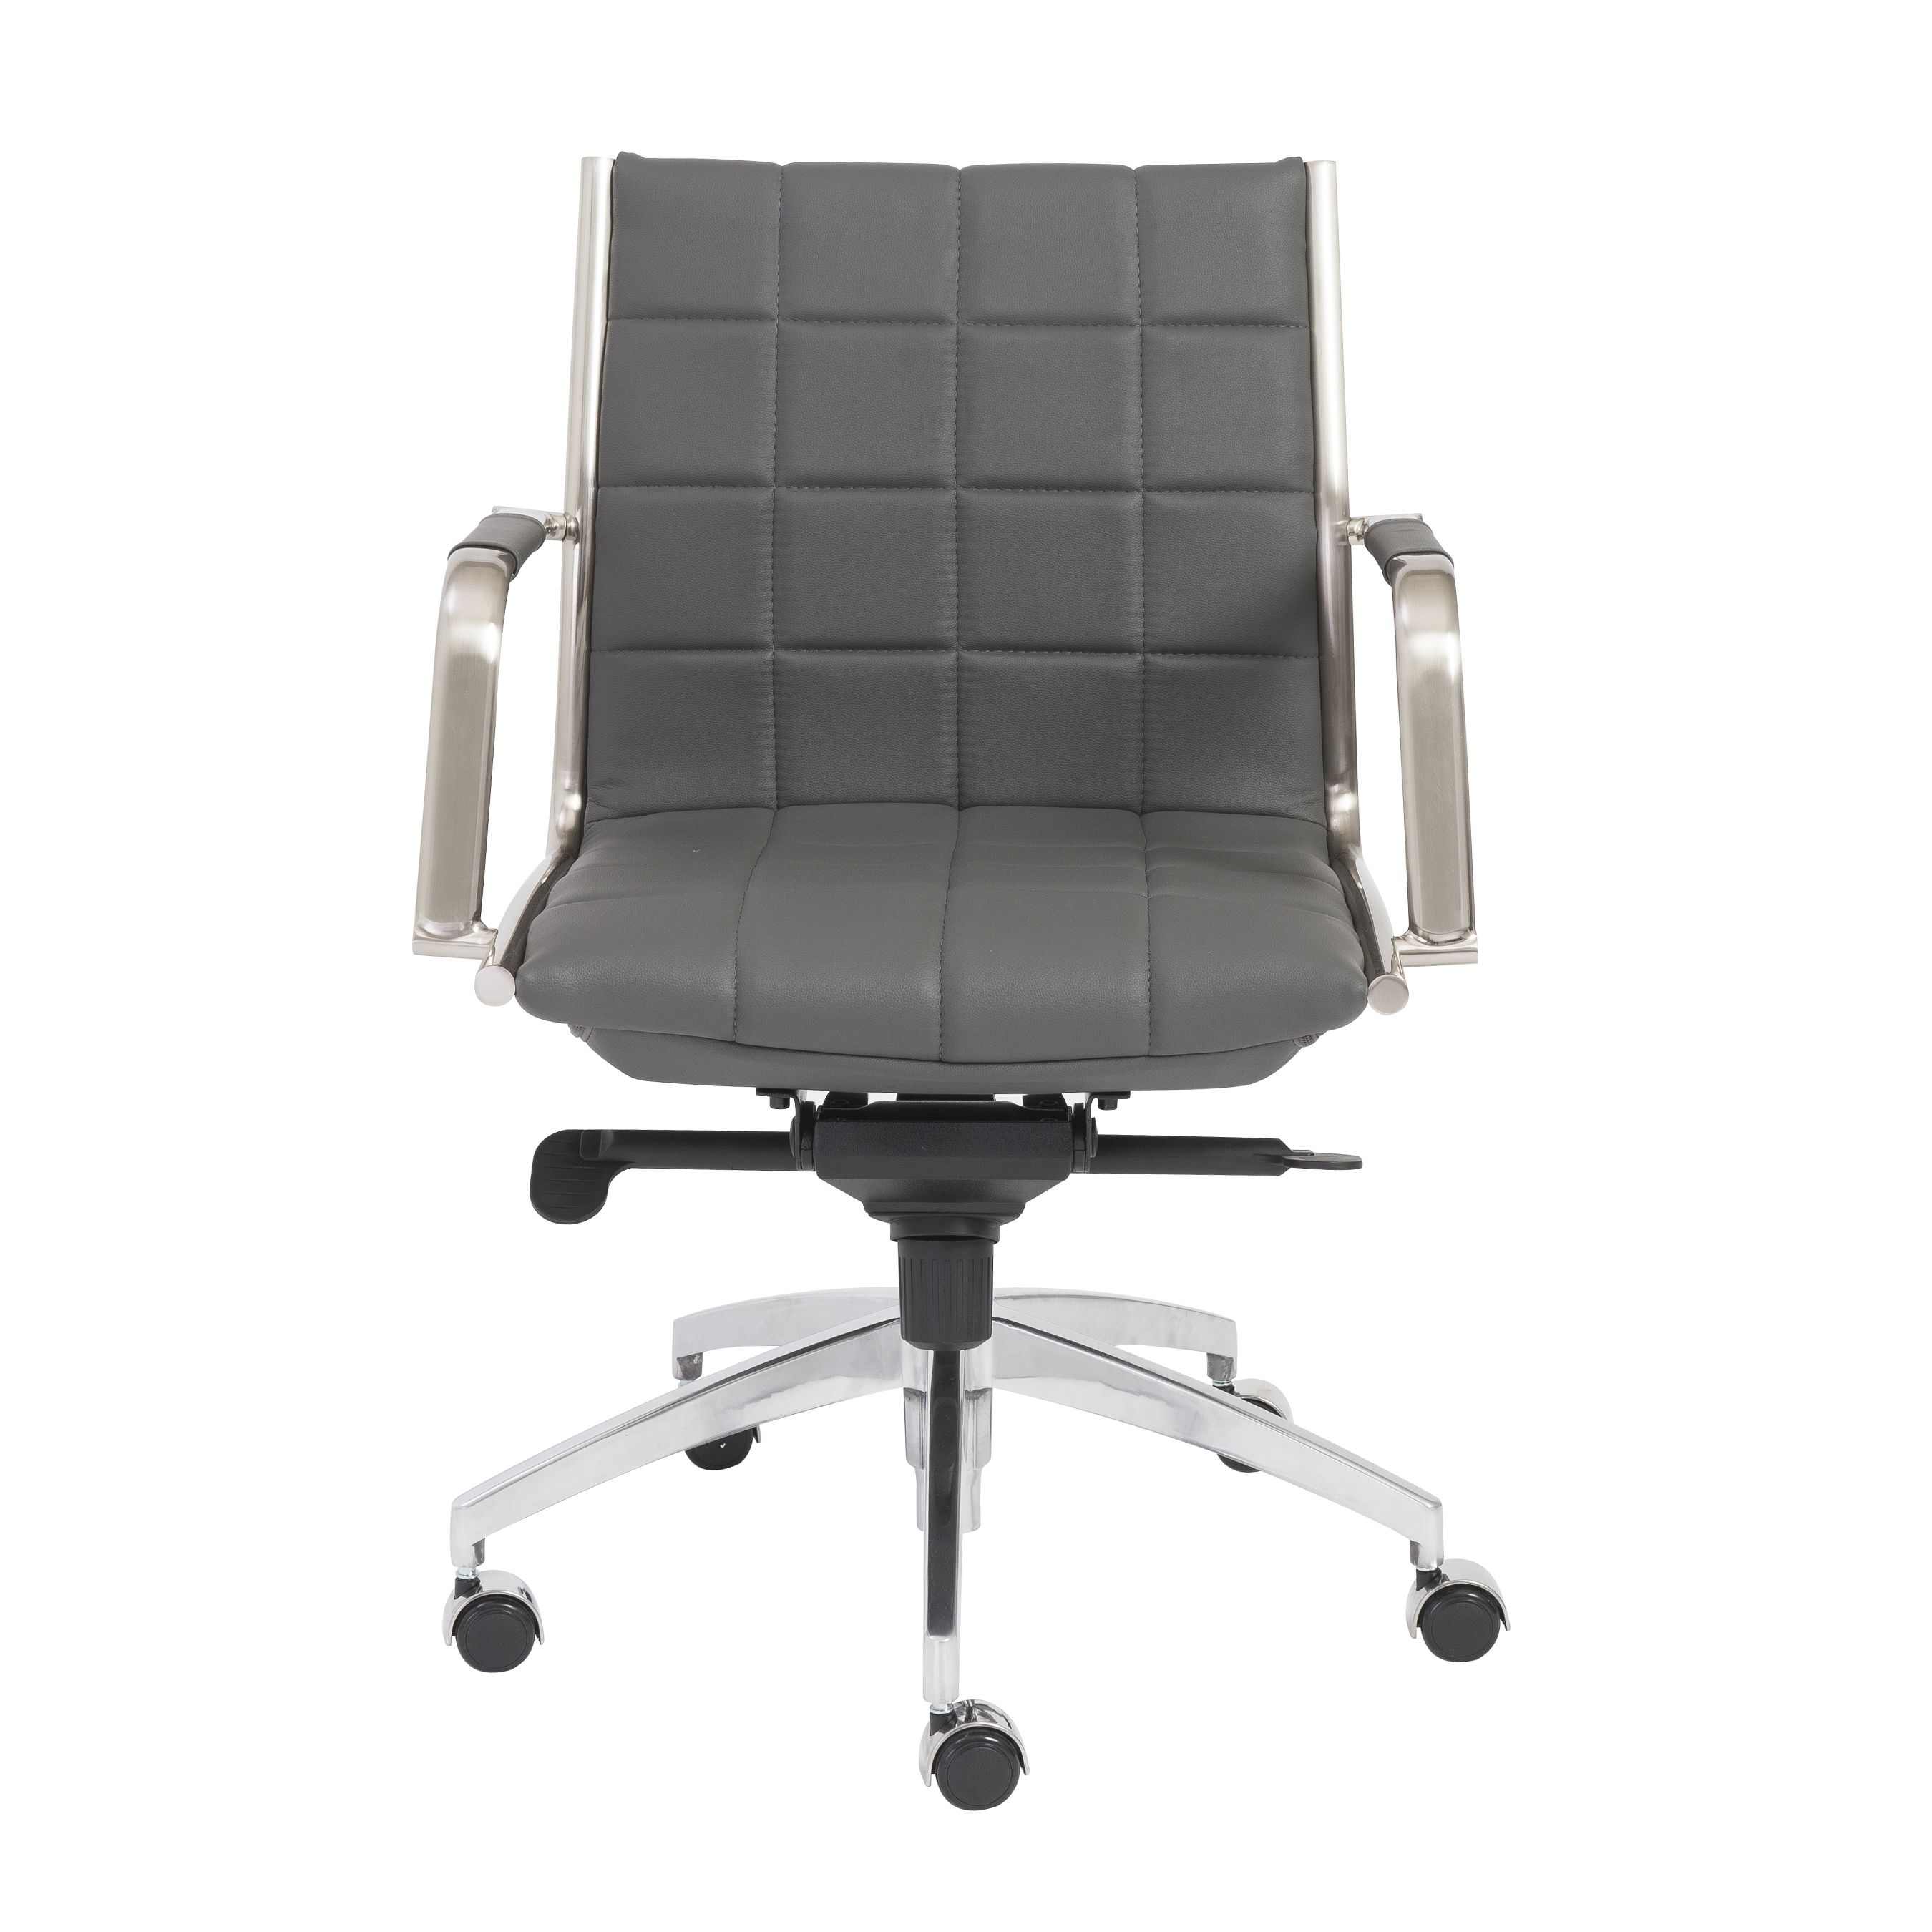 454 fiona office chair chrome jtl conference room inspiration